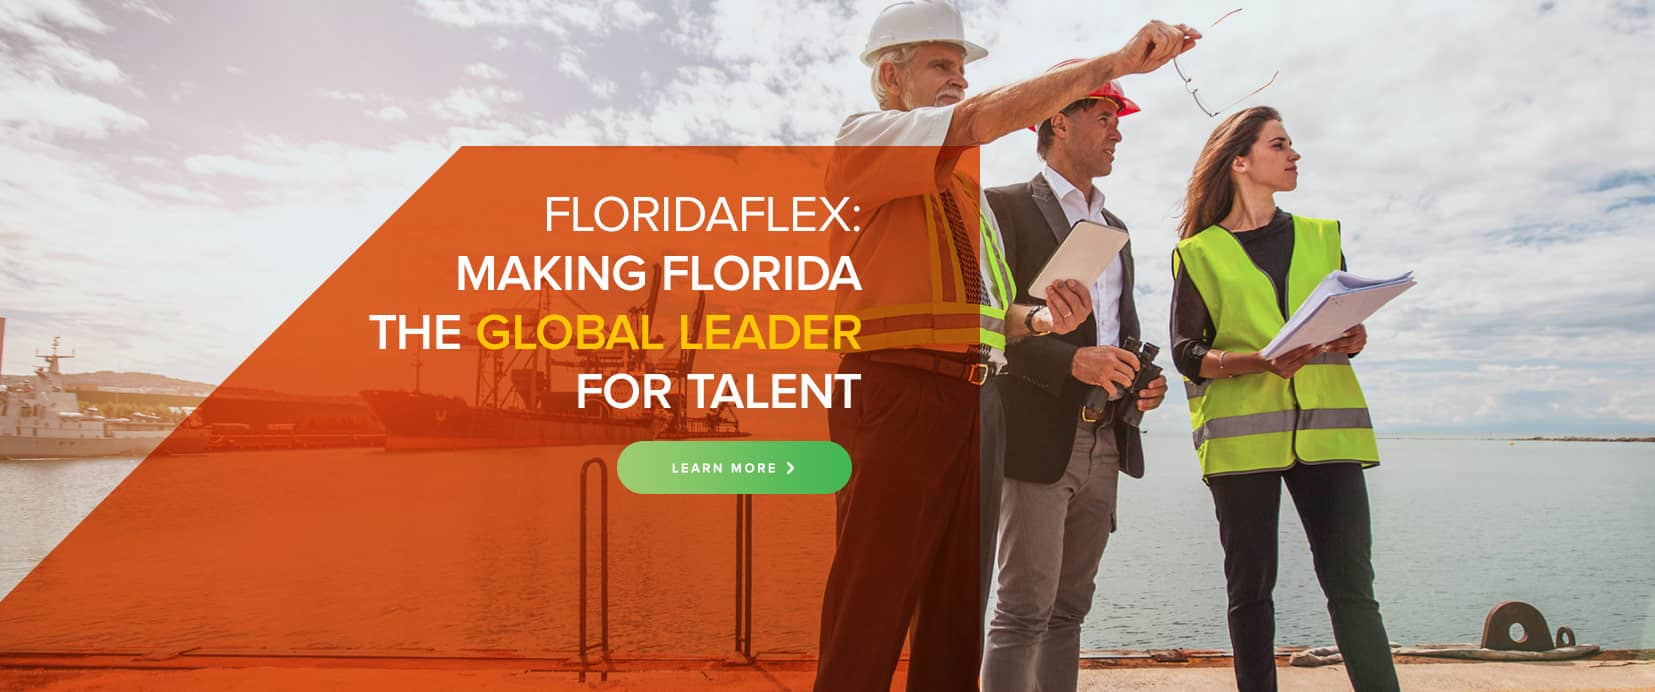 FloridaFlex - Making Florida the Global Leader for Talent